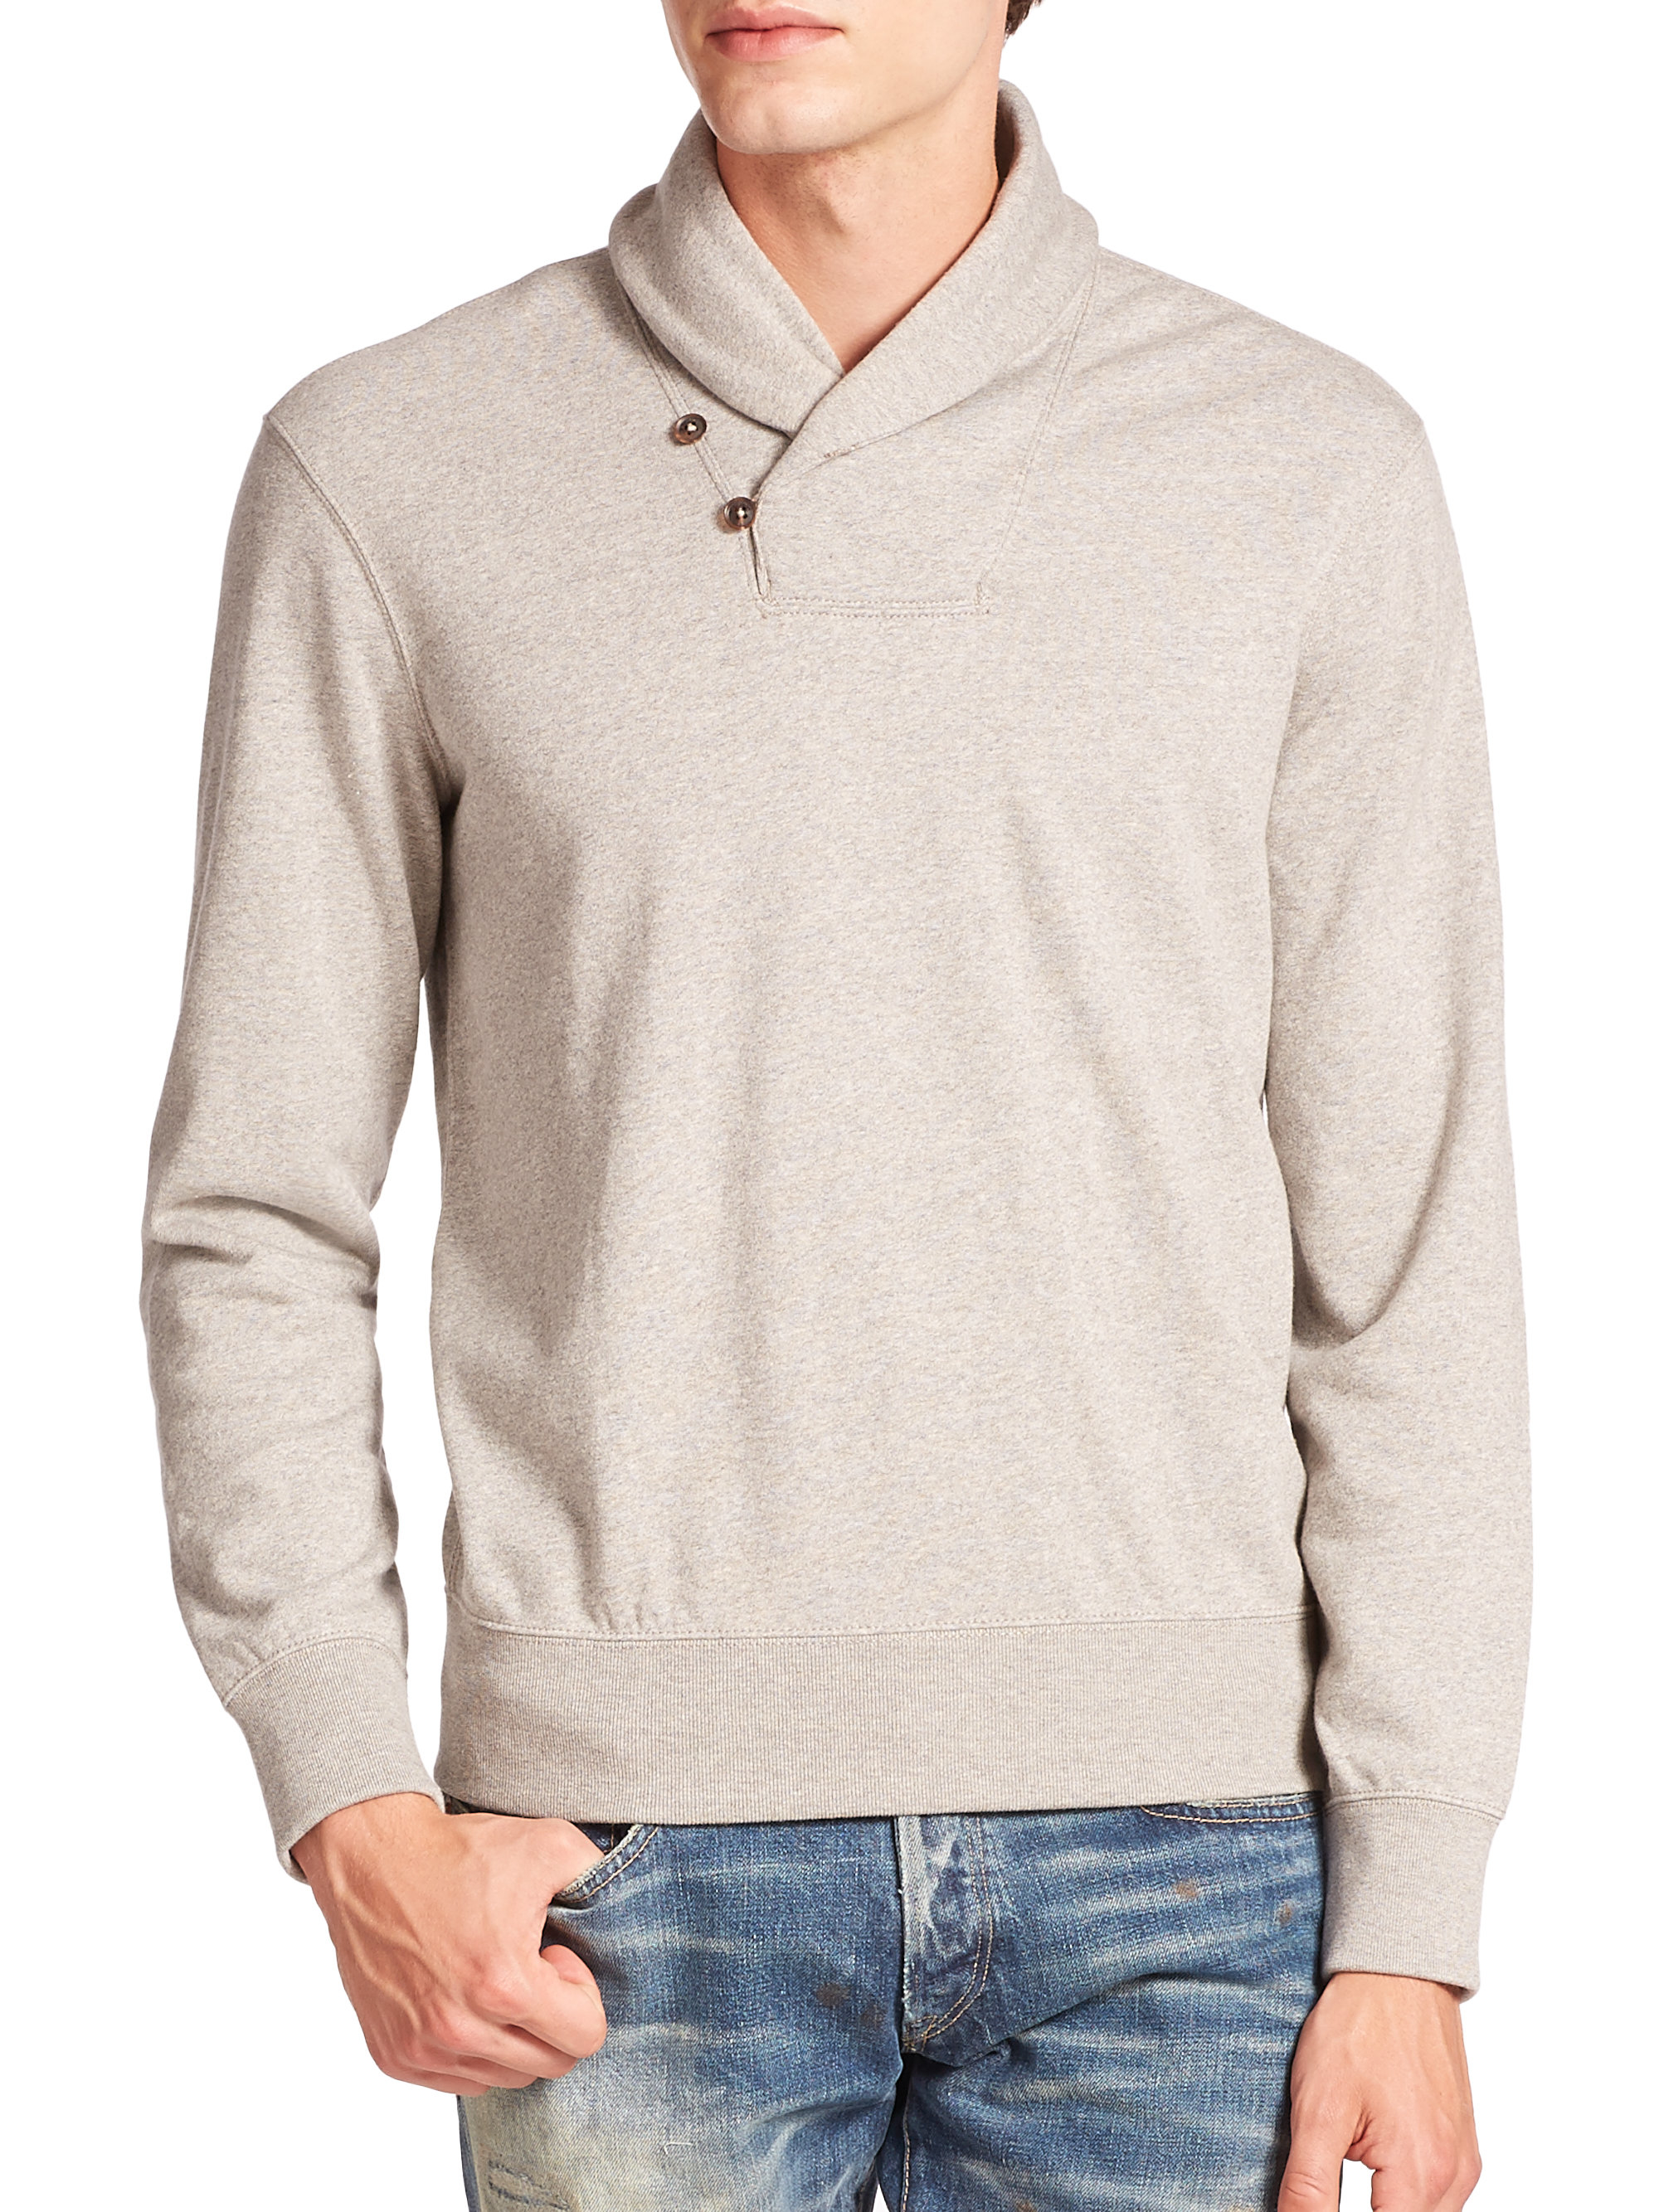 polo ralph lauren shawl collar fleece pullover in gray for men lyst. Black Bedroom Furniture Sets. Home Design Ideas